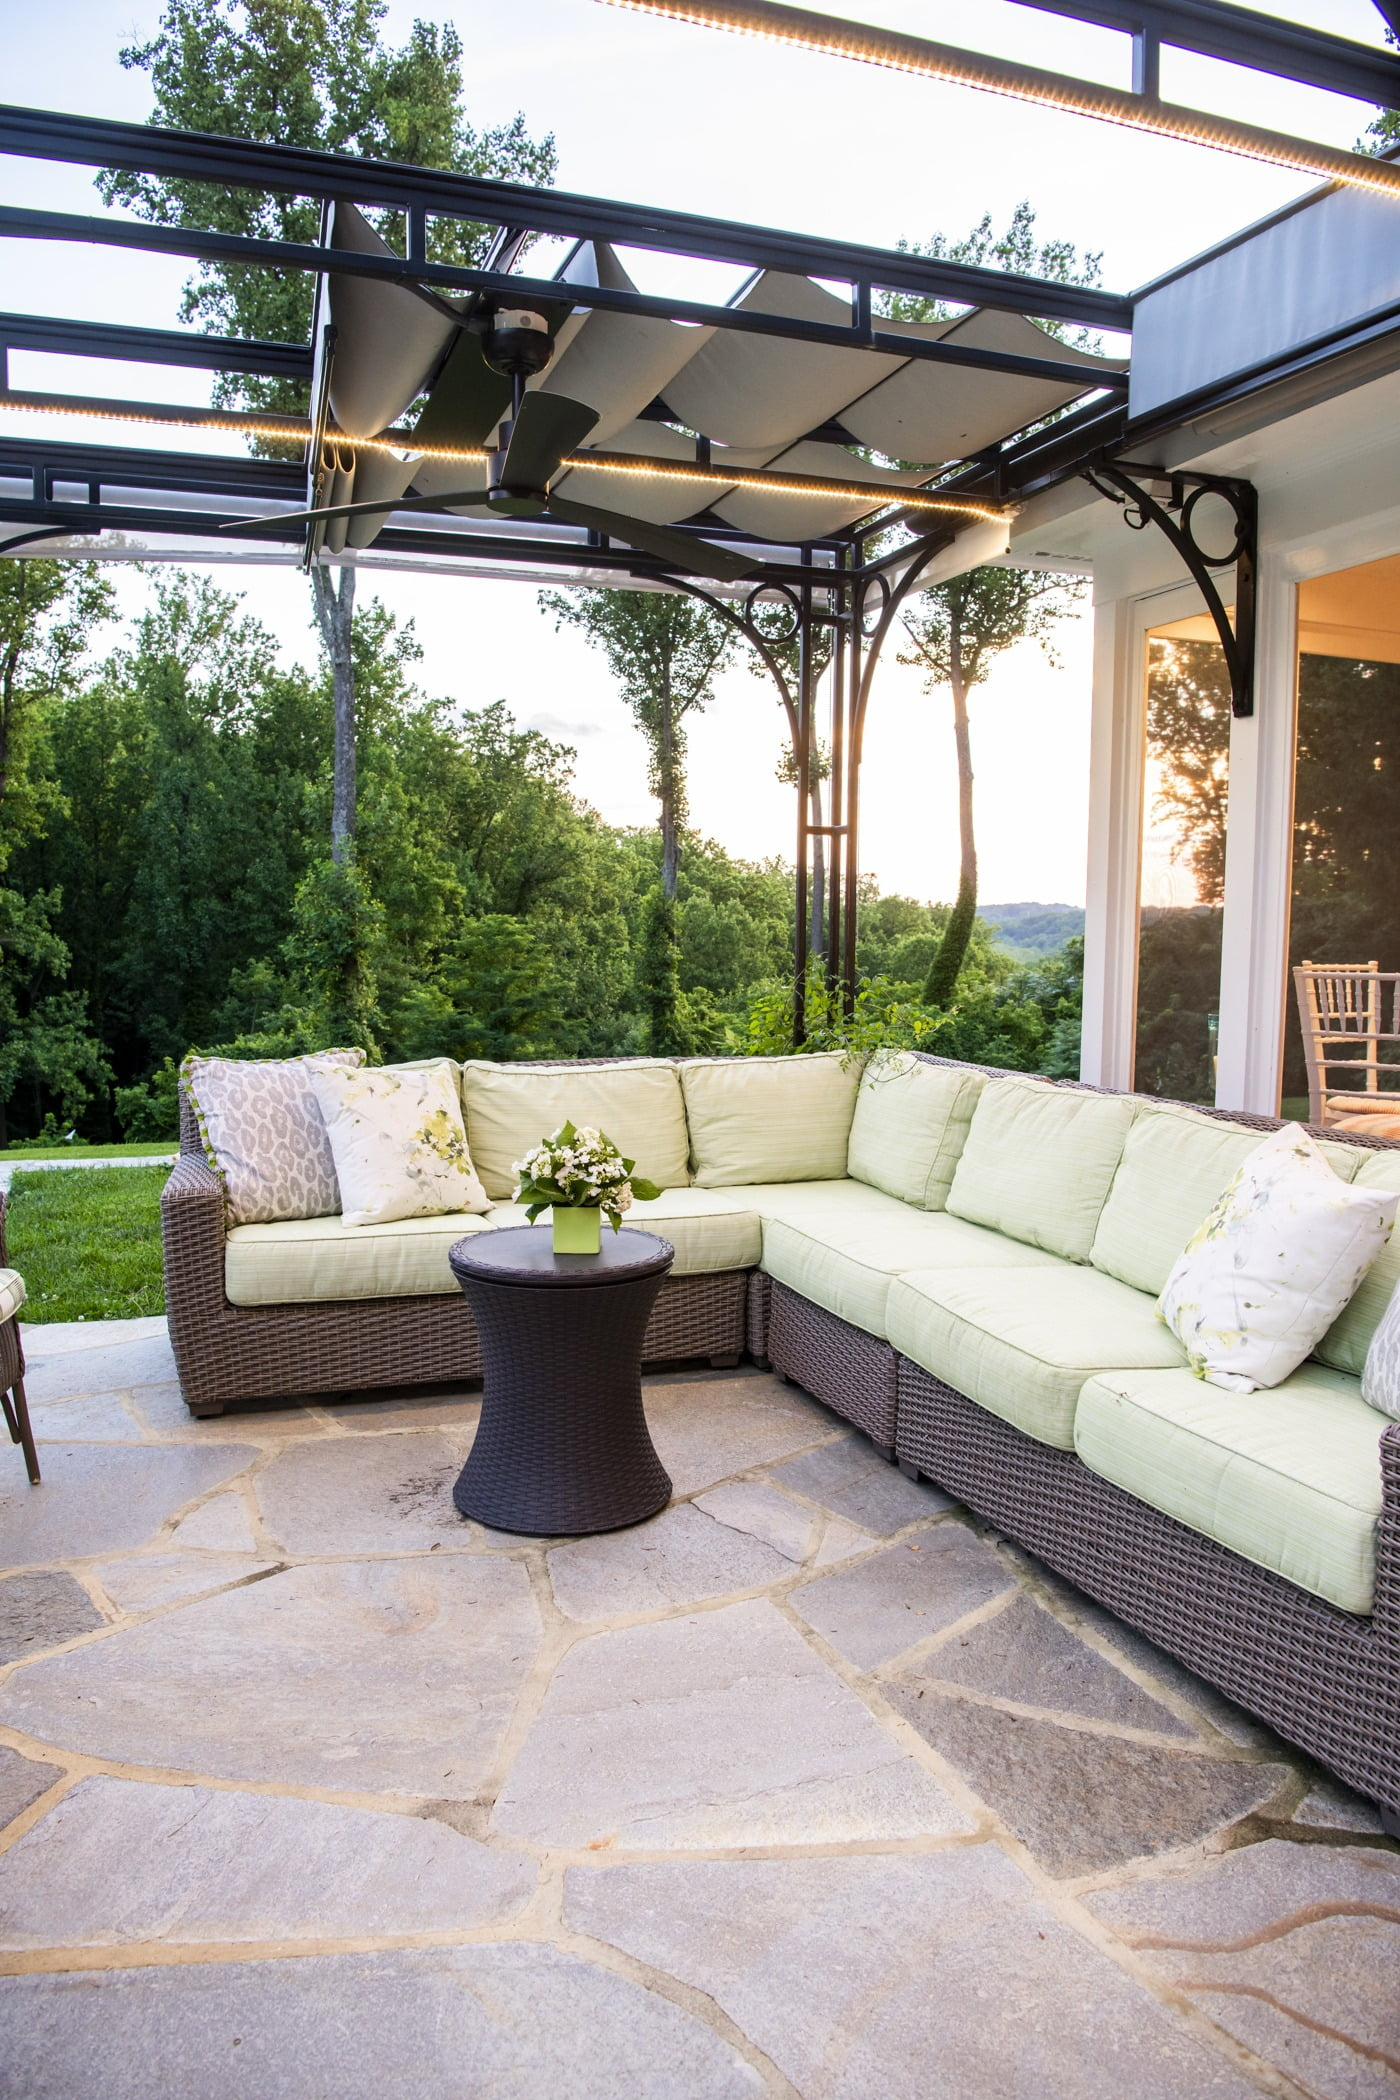 Luxury outdoor pool house space with an outdoor couch and retractable ceiling (3)